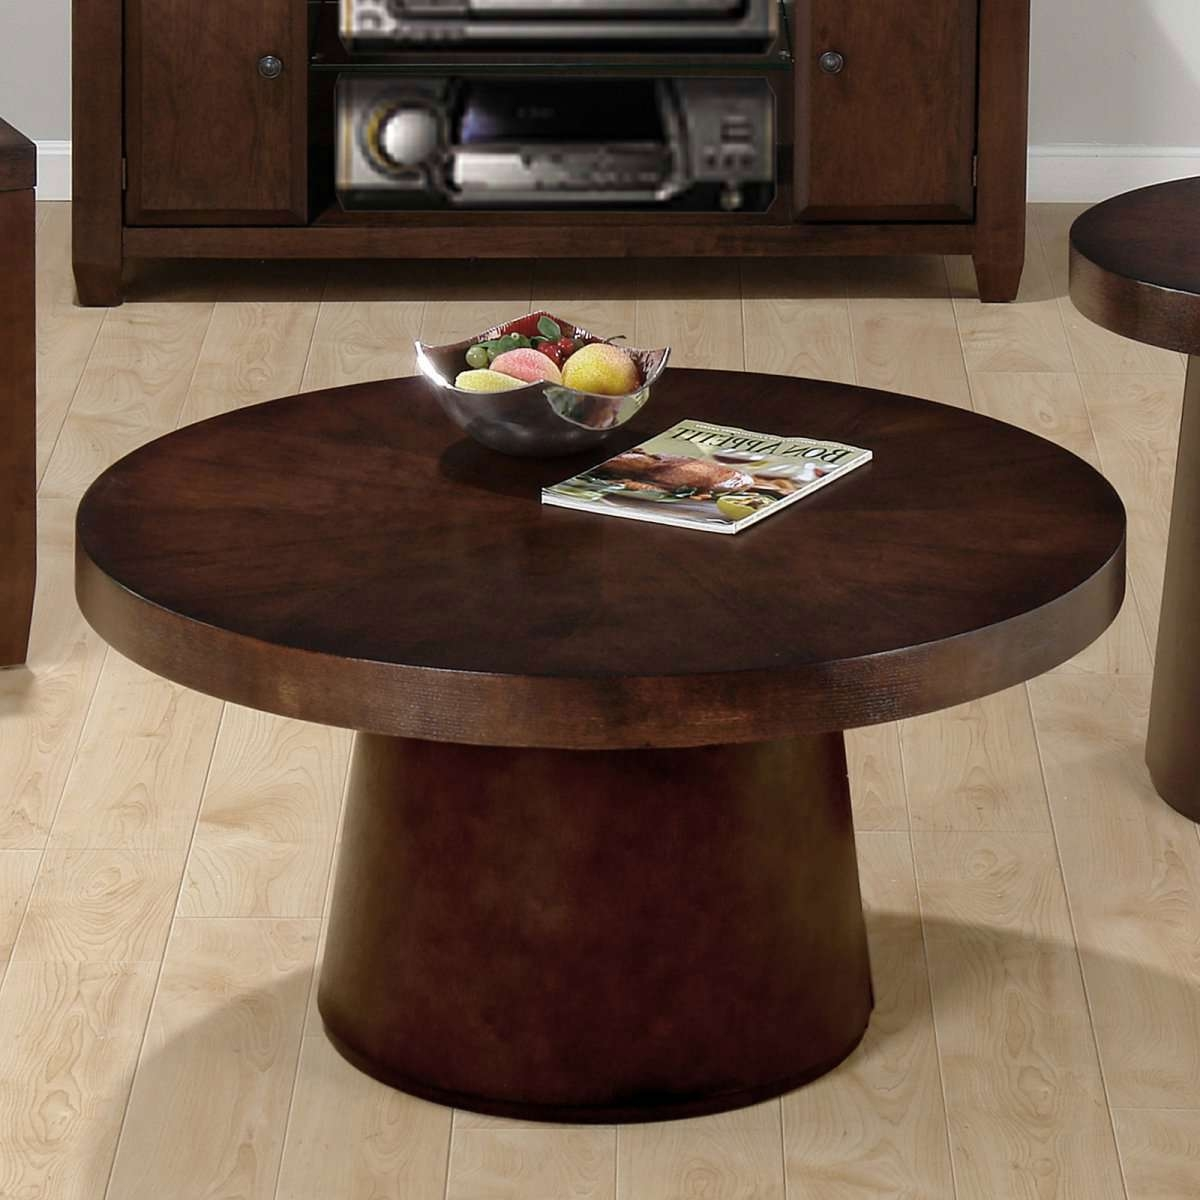 Fashionable Dark Brown Coffee Tables With Inspiring Ideas For Small Coffee Tables Design (View 10 of 20)